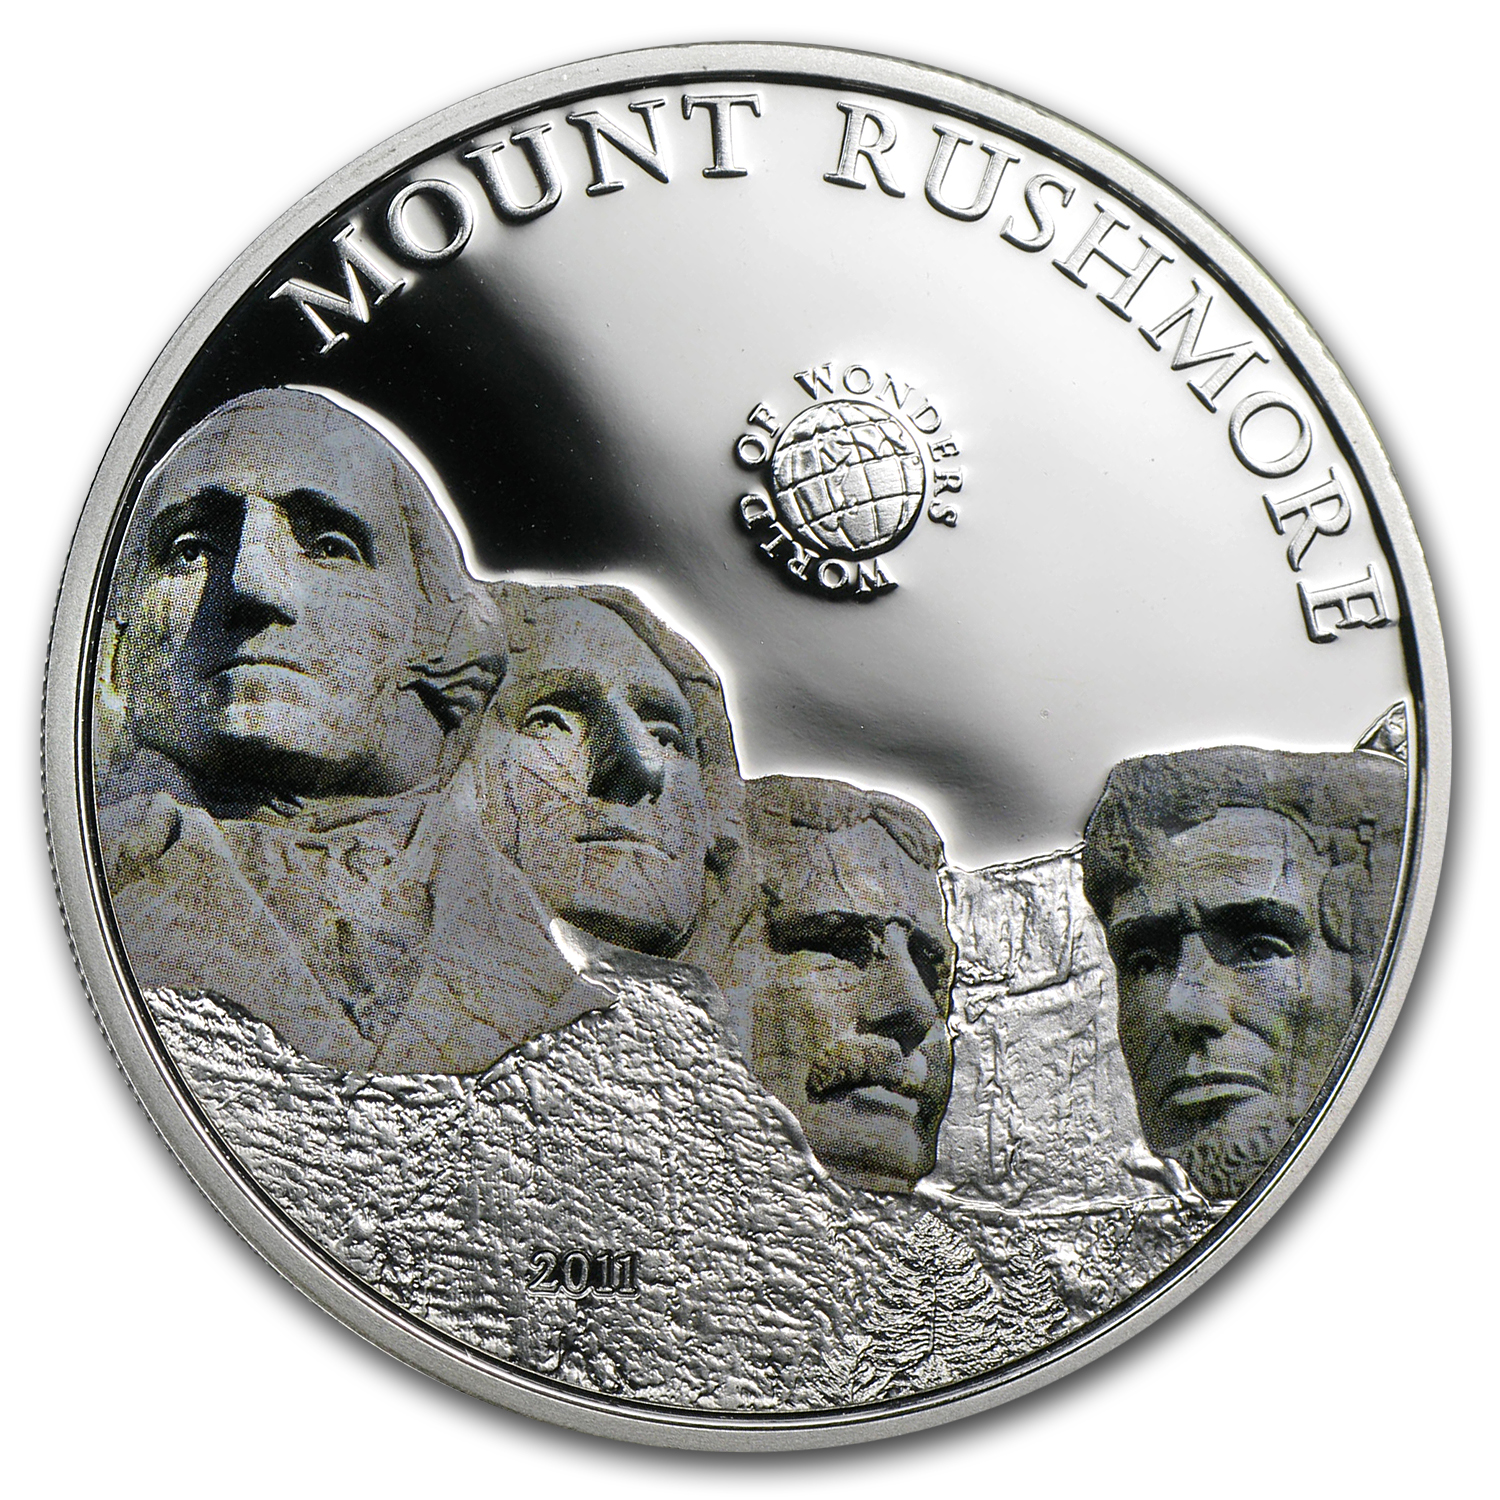 2011 Palau Proof Silver $5 World of Wonders Mount Rushmore